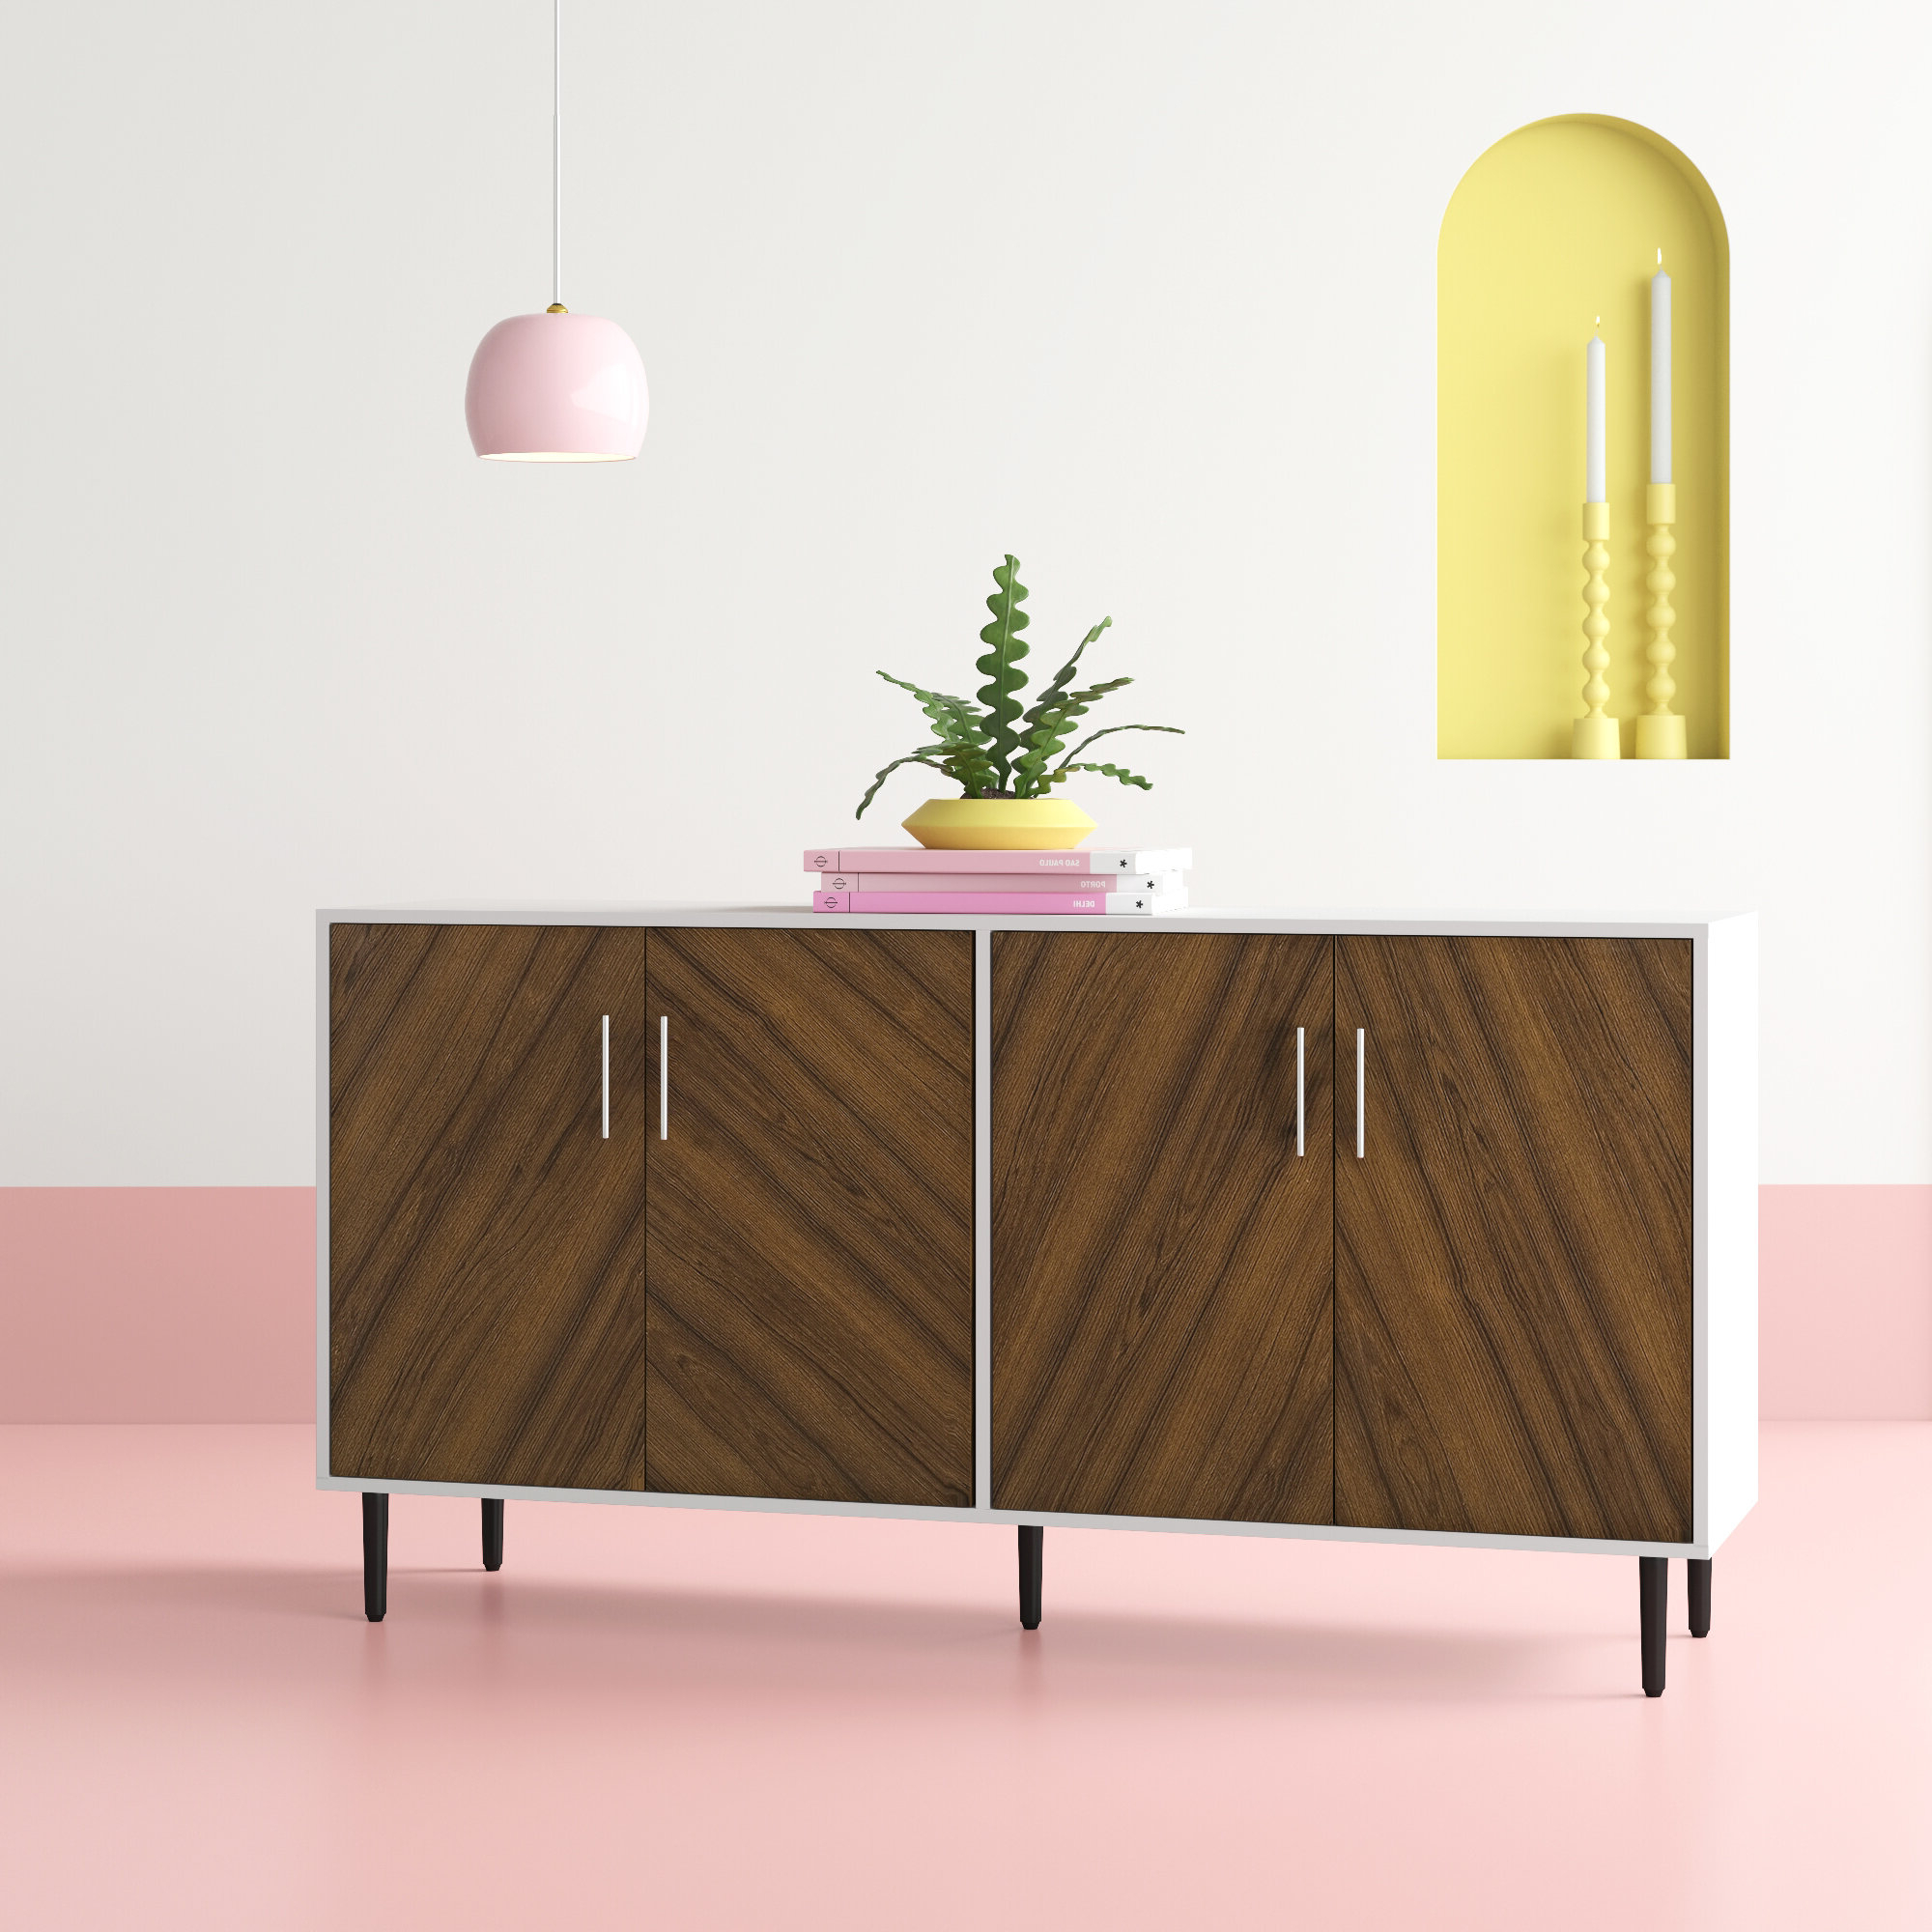 Modern Buffet | Wayfair For Contemporary Wooden Buffets With Four Open Compartments And Metal Tapered Legs (View 16 of 20)